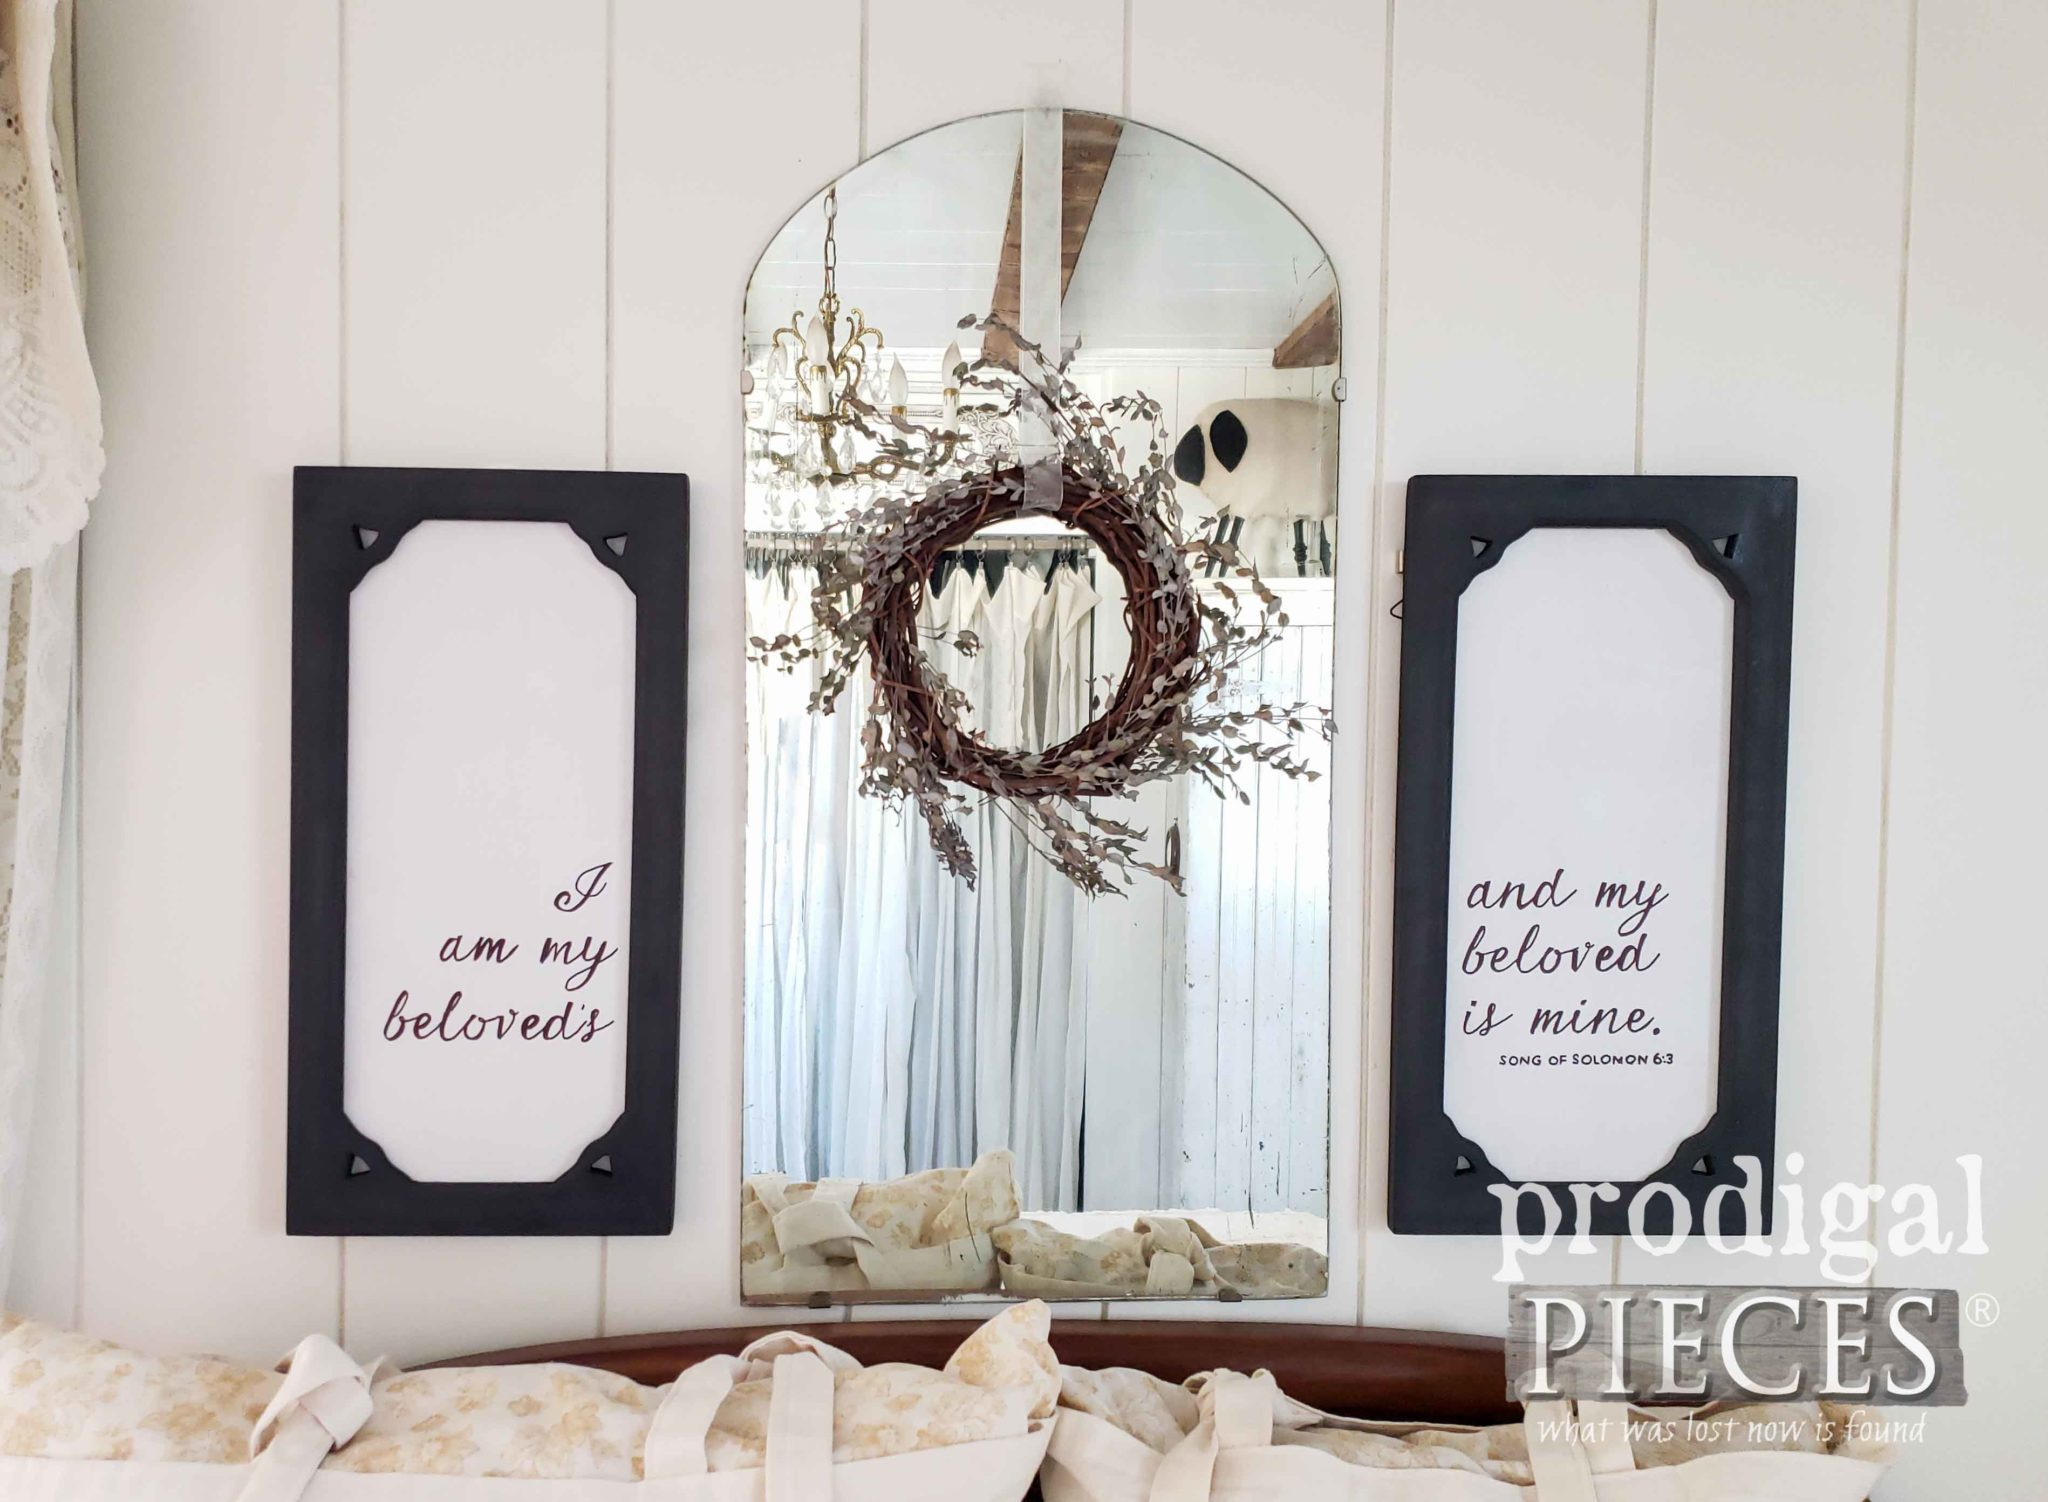 DIY Typography Wall Art with Scripture   Tutorial by Larissa of Prodigal Pieces   prodigalpieces.com #prodigalpieces #diy #handmade #home #homedecor #homedecorideas